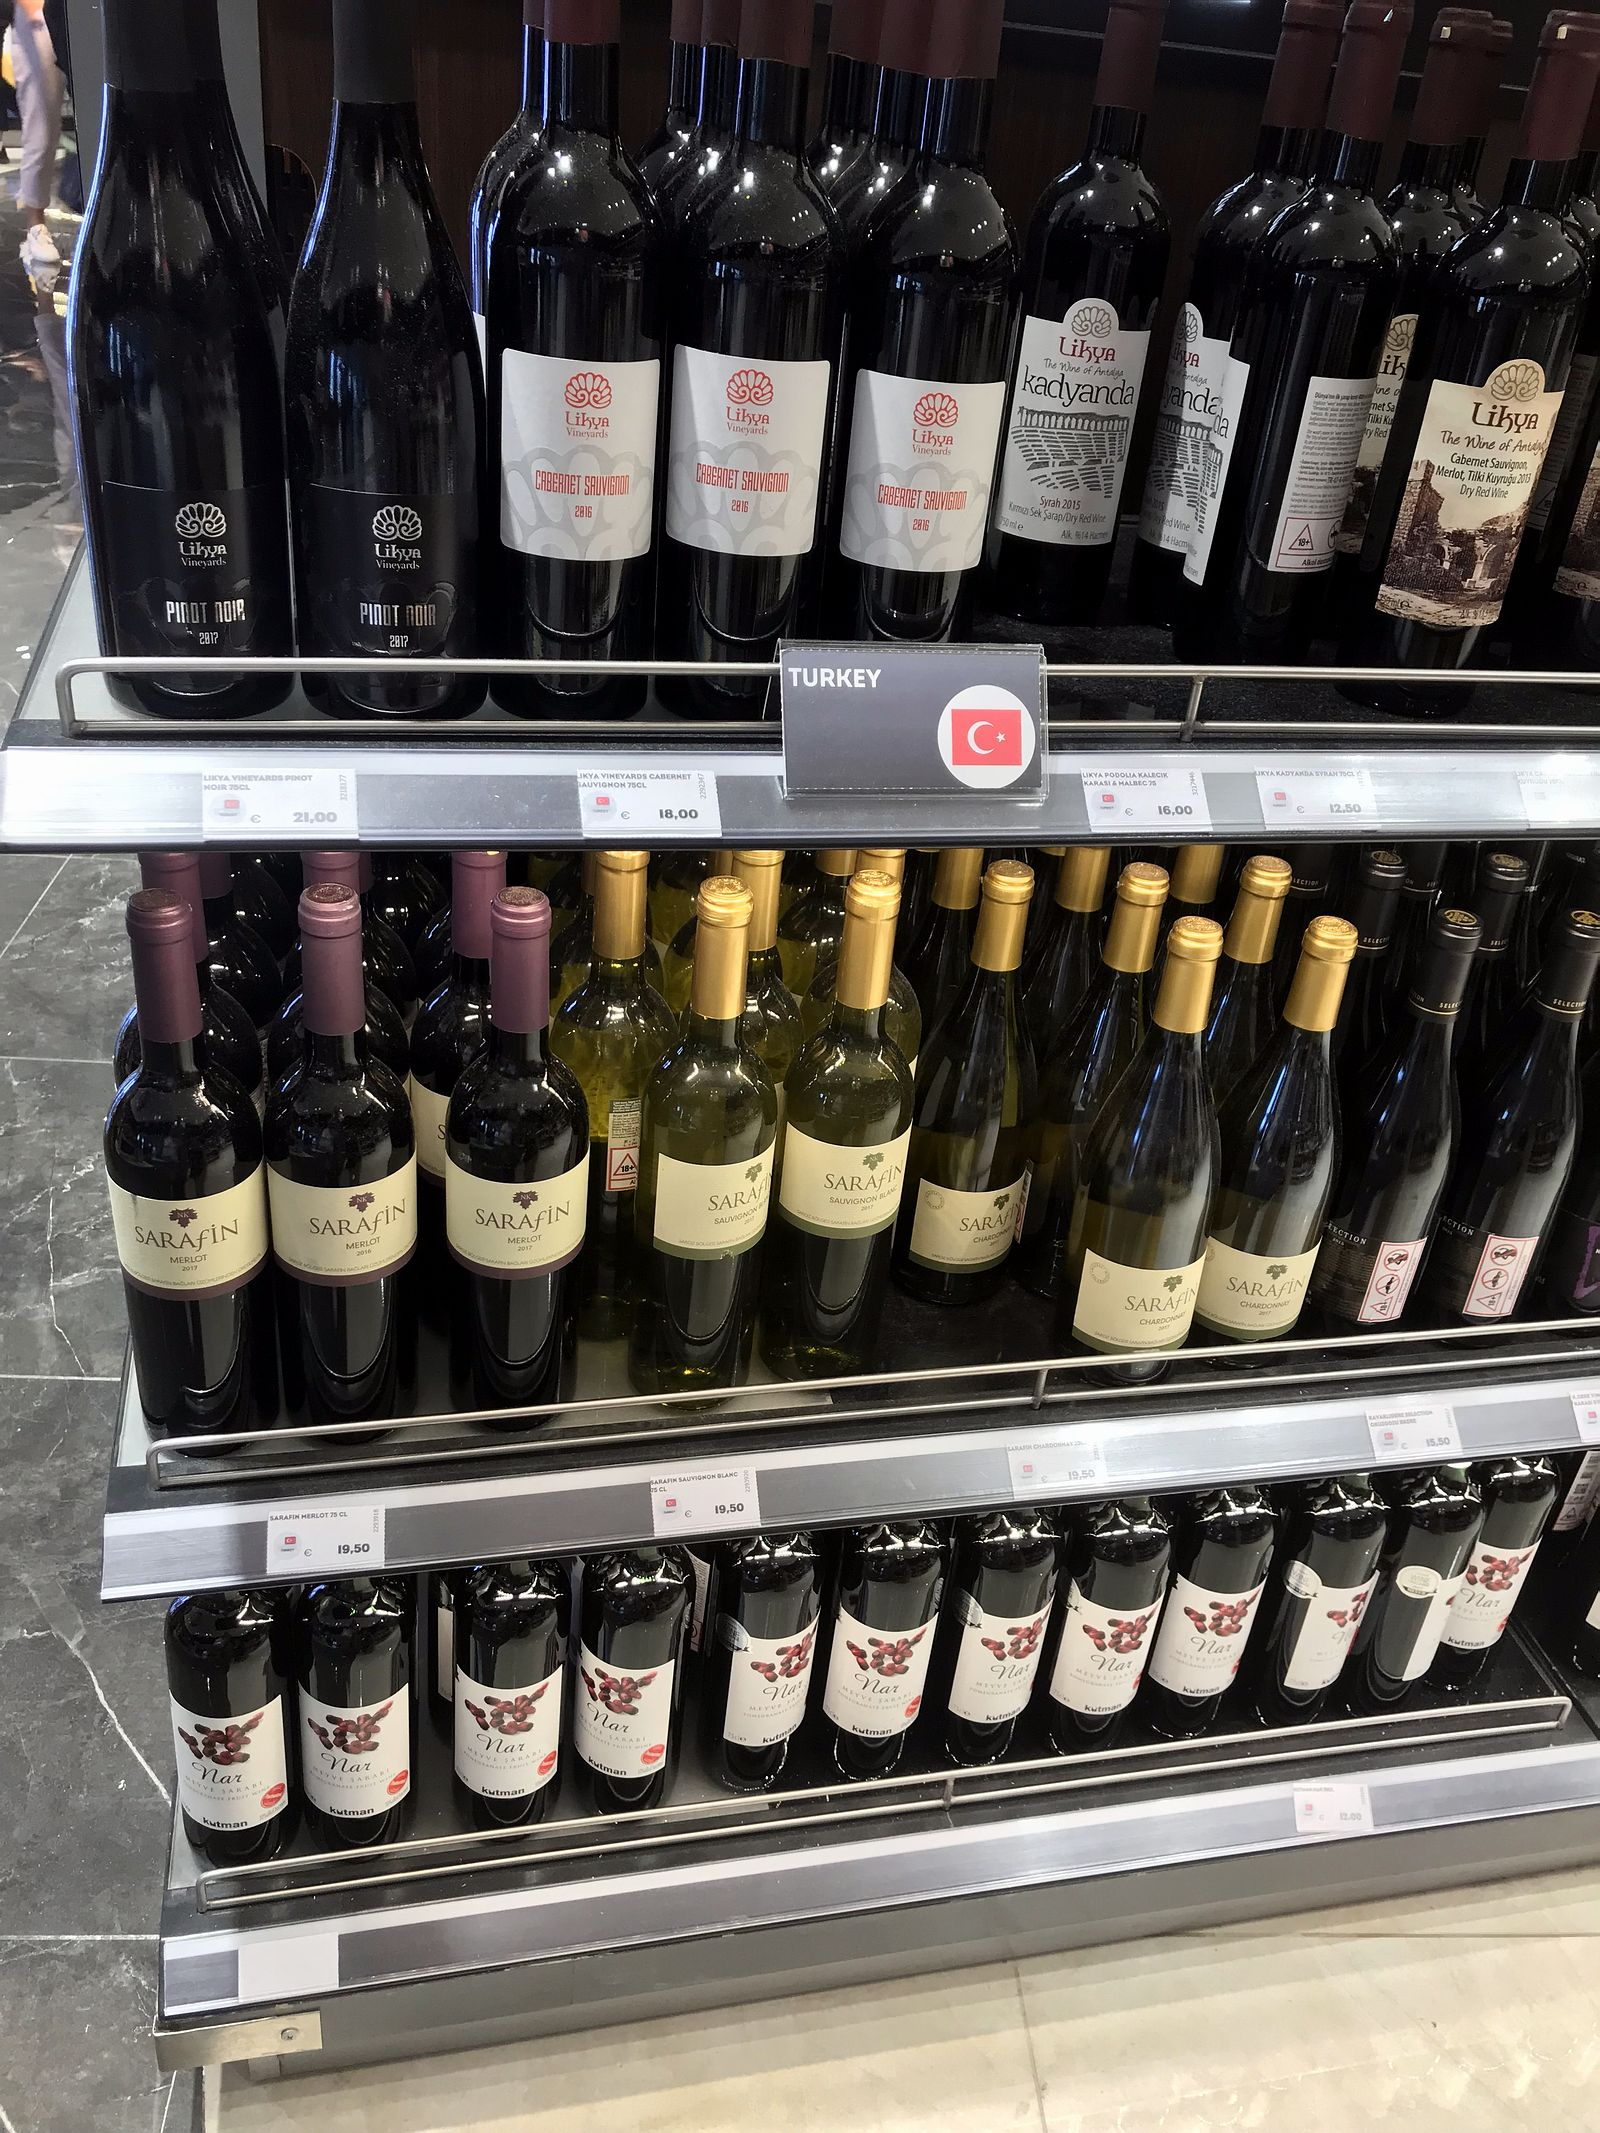 Duty free Antalya, august 2019, turkish wine